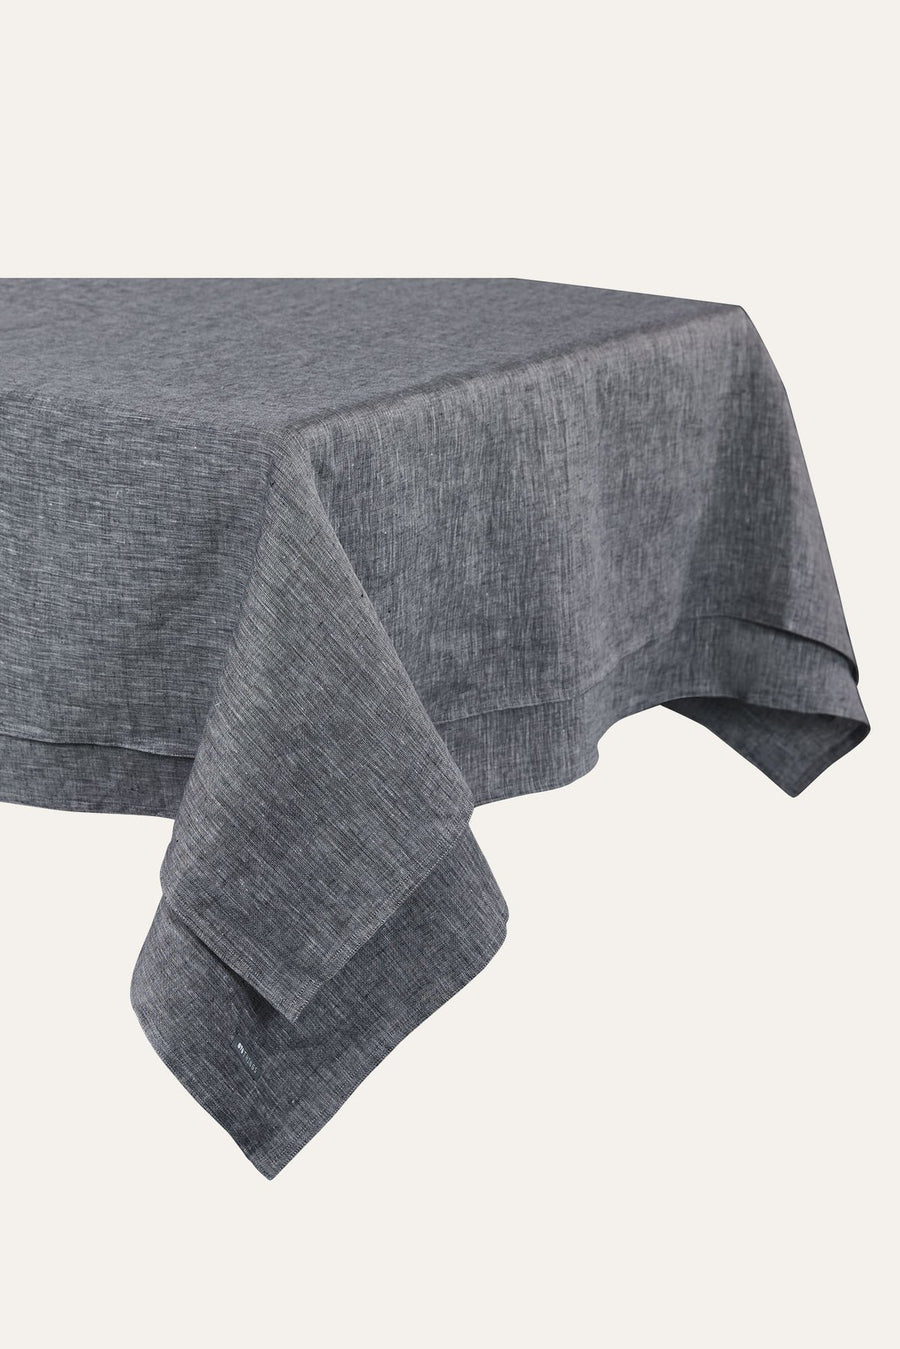 Linen Tablecloth in Grey